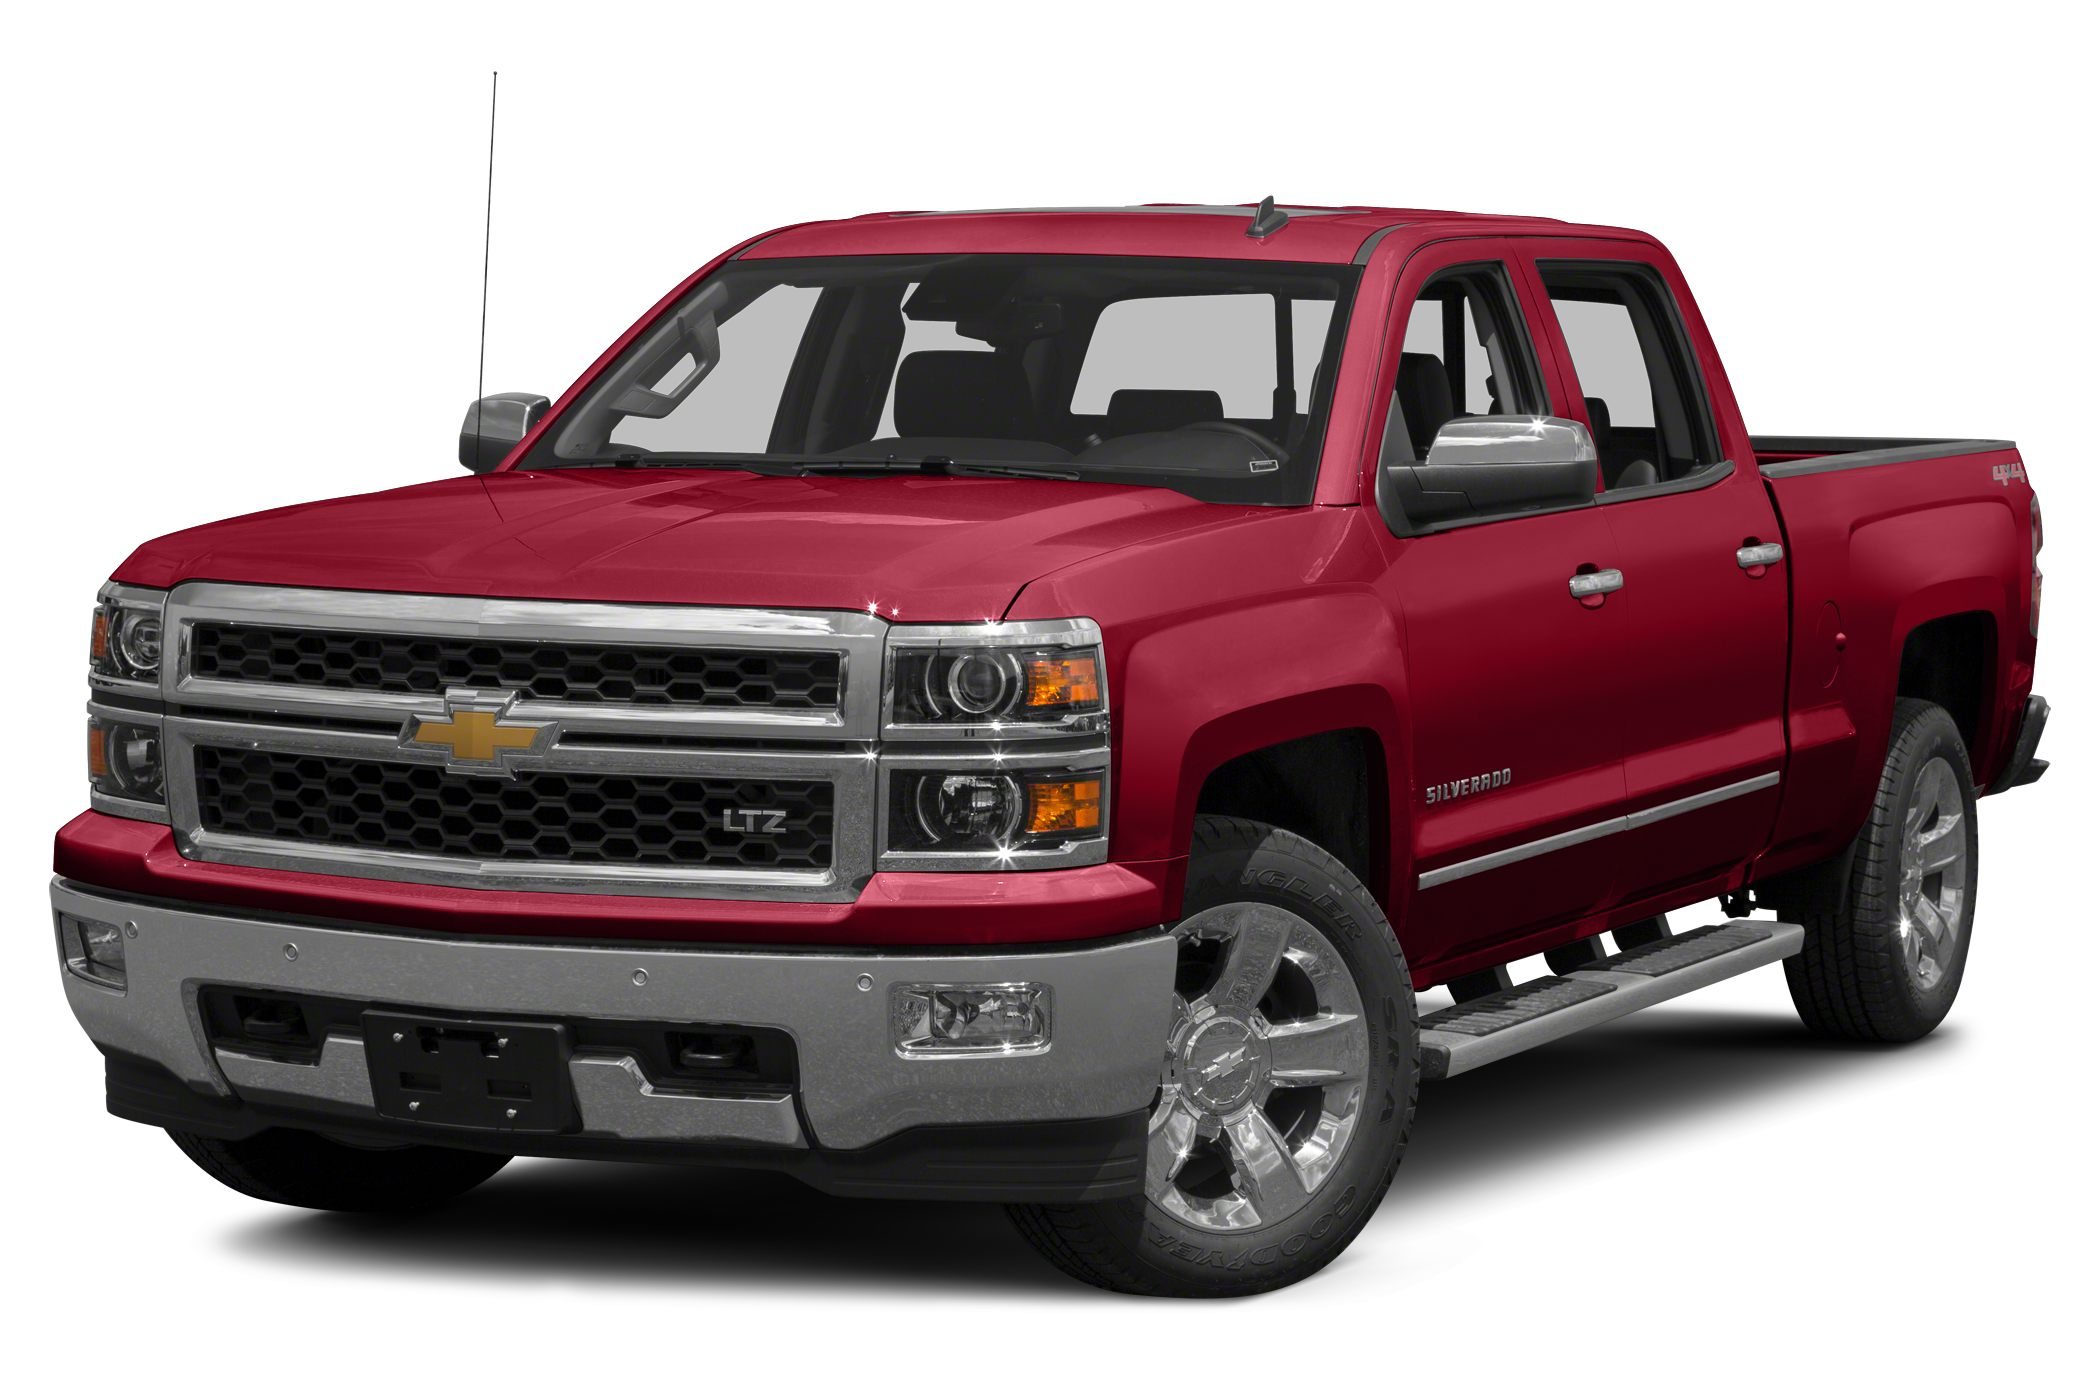 2015 Chevrolet Silverado 1500 2LZ Crew Cab Pickup for sale in Ripley for $46,988 with 7 miles.